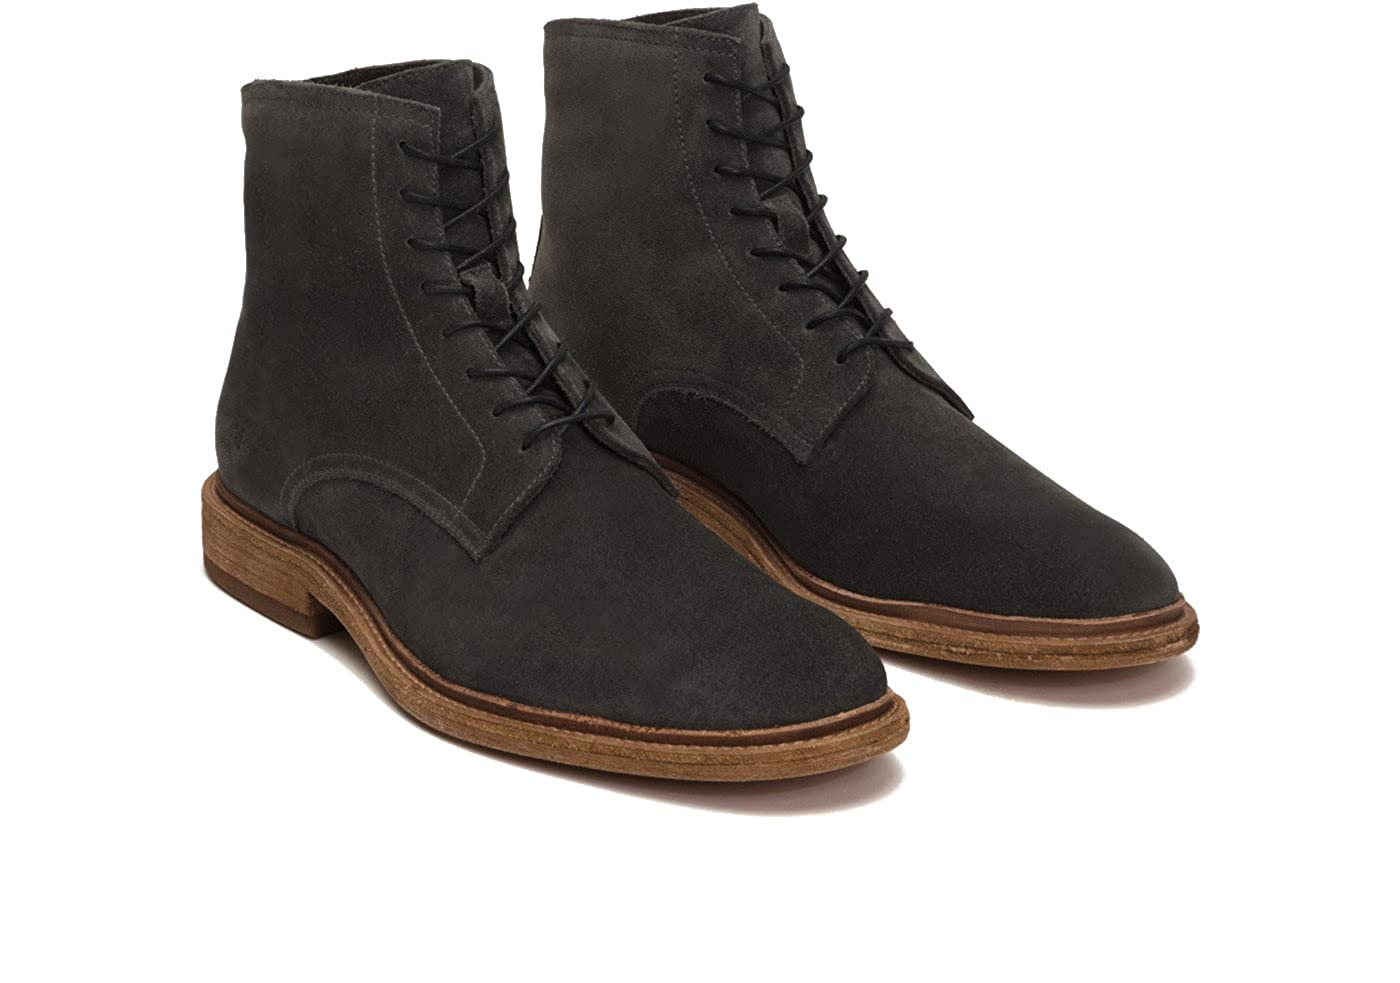 FRYE FRYEChris Lace Up - Chris agujetas hombres Slate Oiled Suede